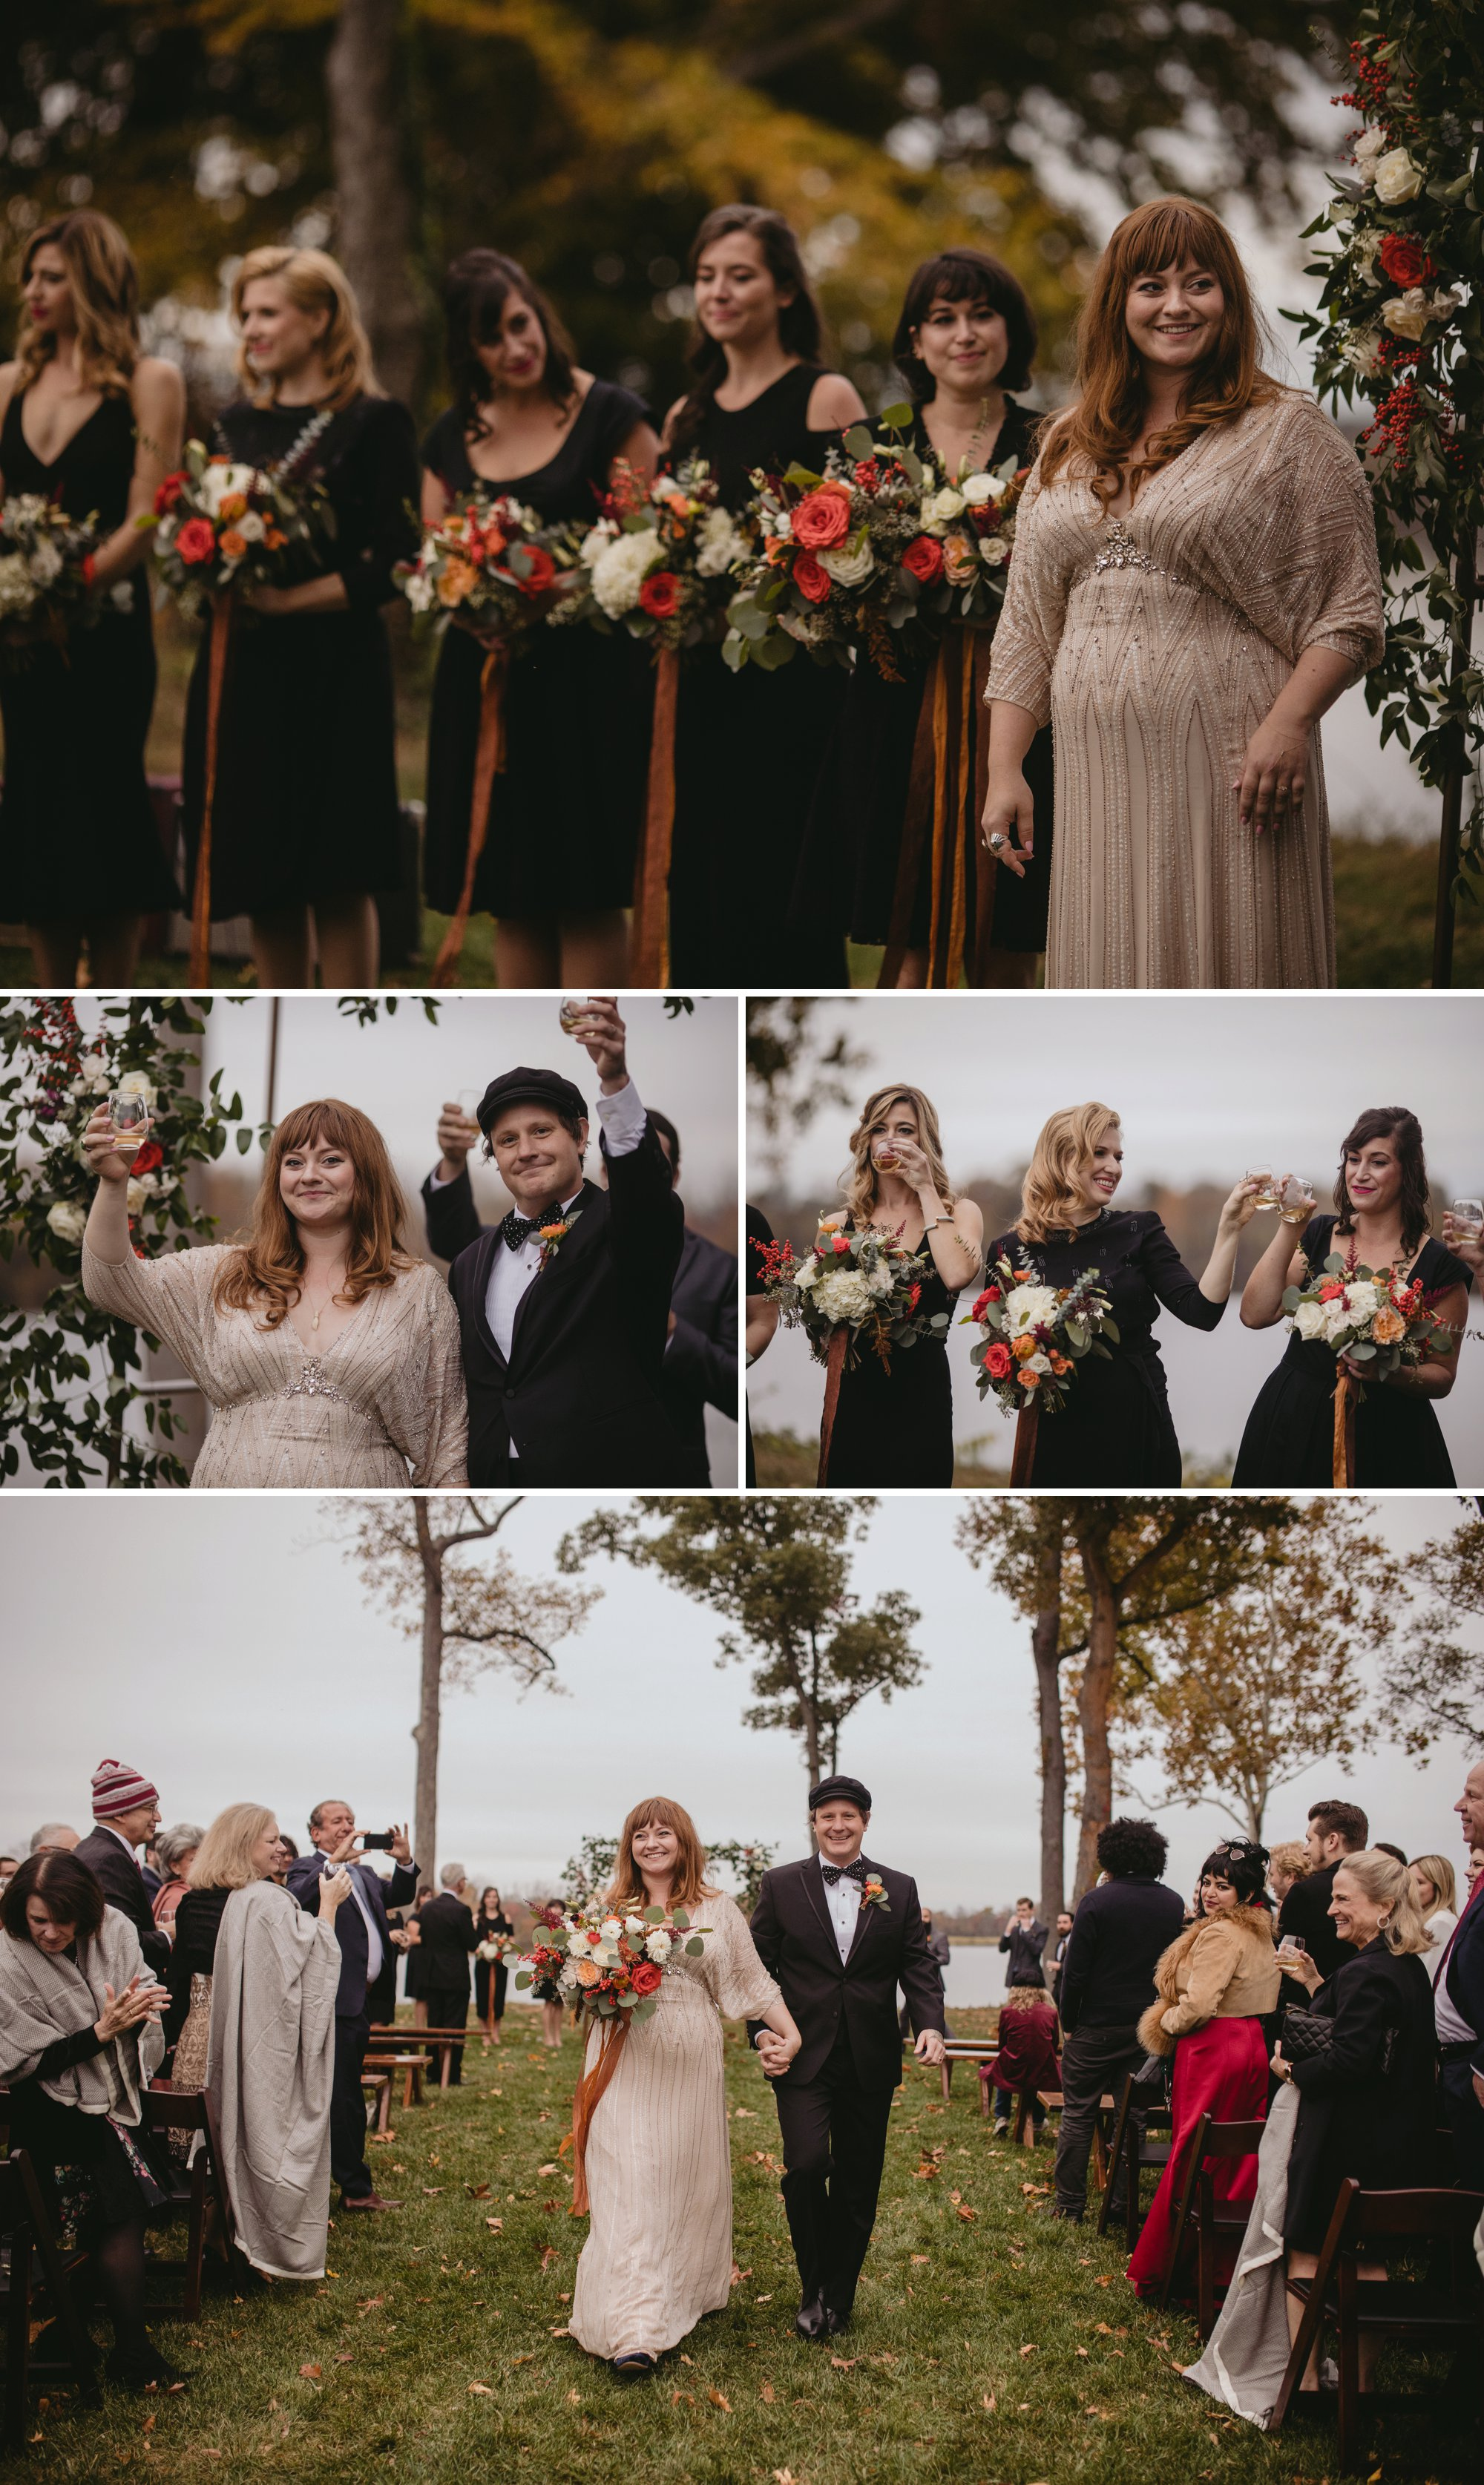 Autumn Richmond VA winery wedding at Upper Shirley Vineyards with lush garden florals and old Hollywood glamour recessional